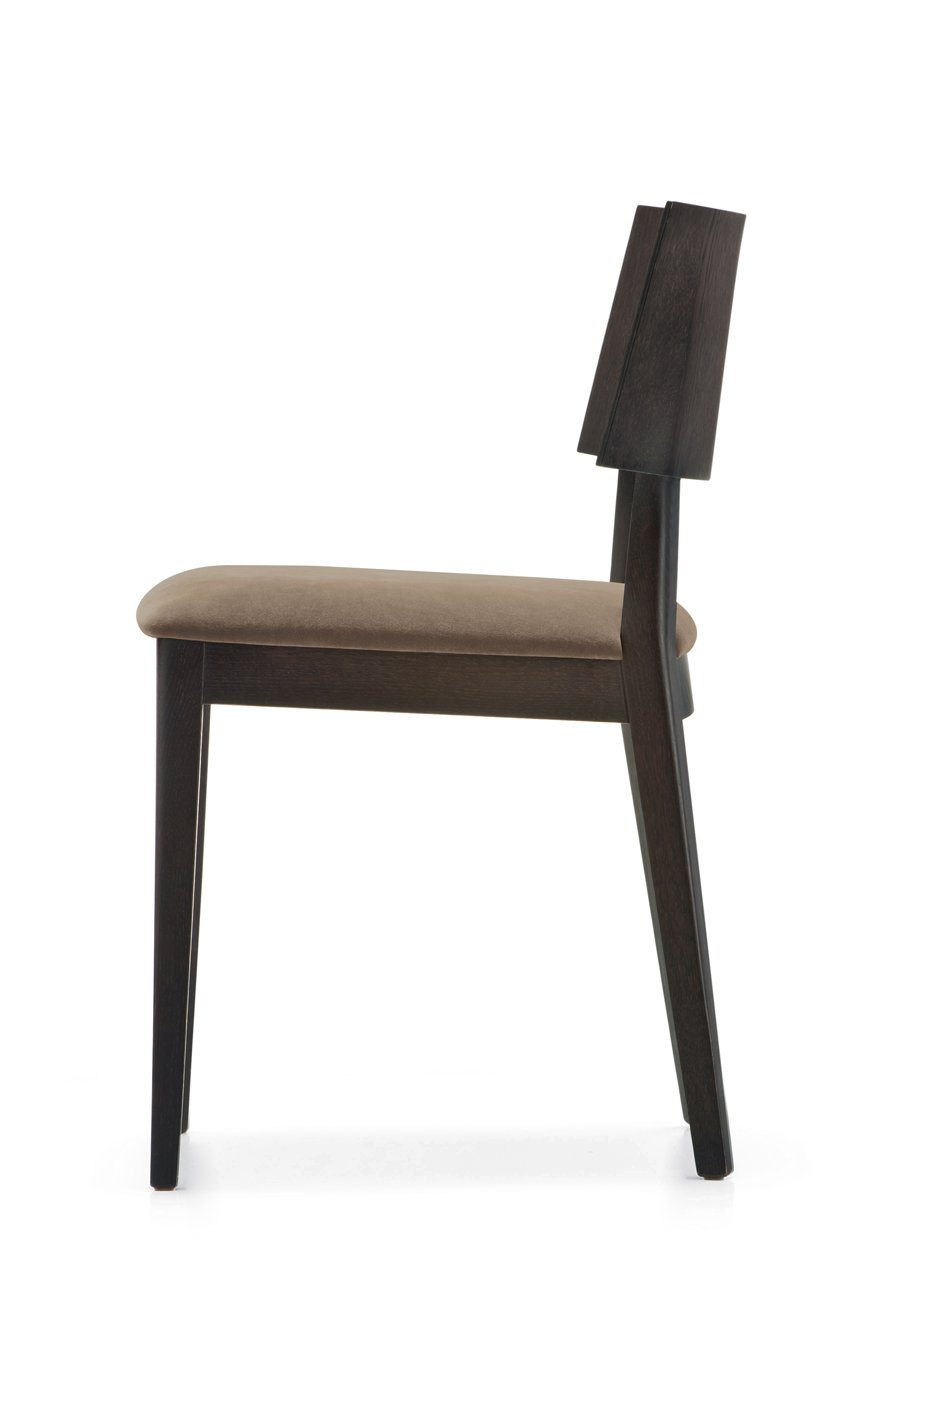 Elle 453 chair from Pedrali, designed by Pedrali R&D